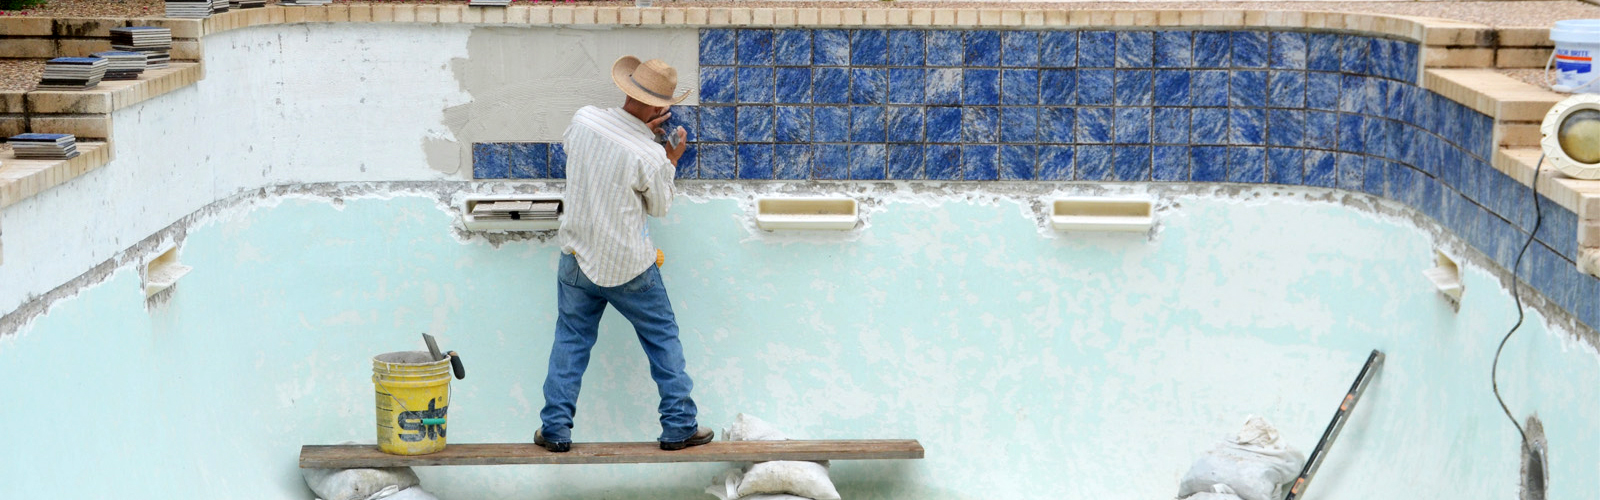 Pool Tile Replacement